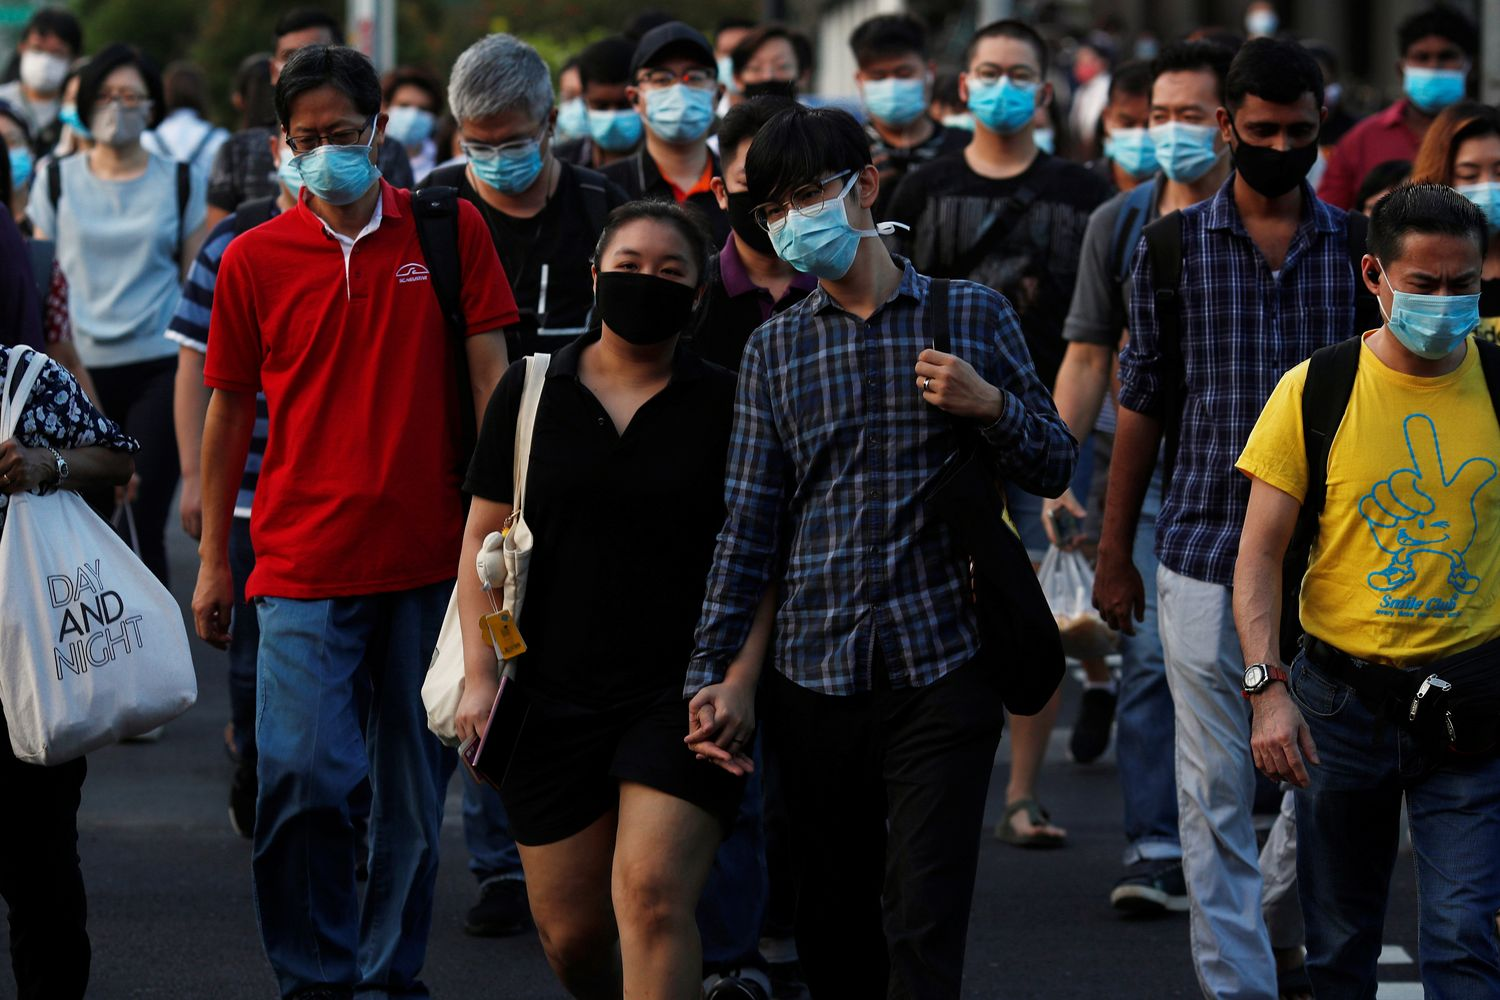 People cross a street during morning peak hour commute amid the coronavirus disease outbreak in Singapore on Wednesday. (Reuters photo)